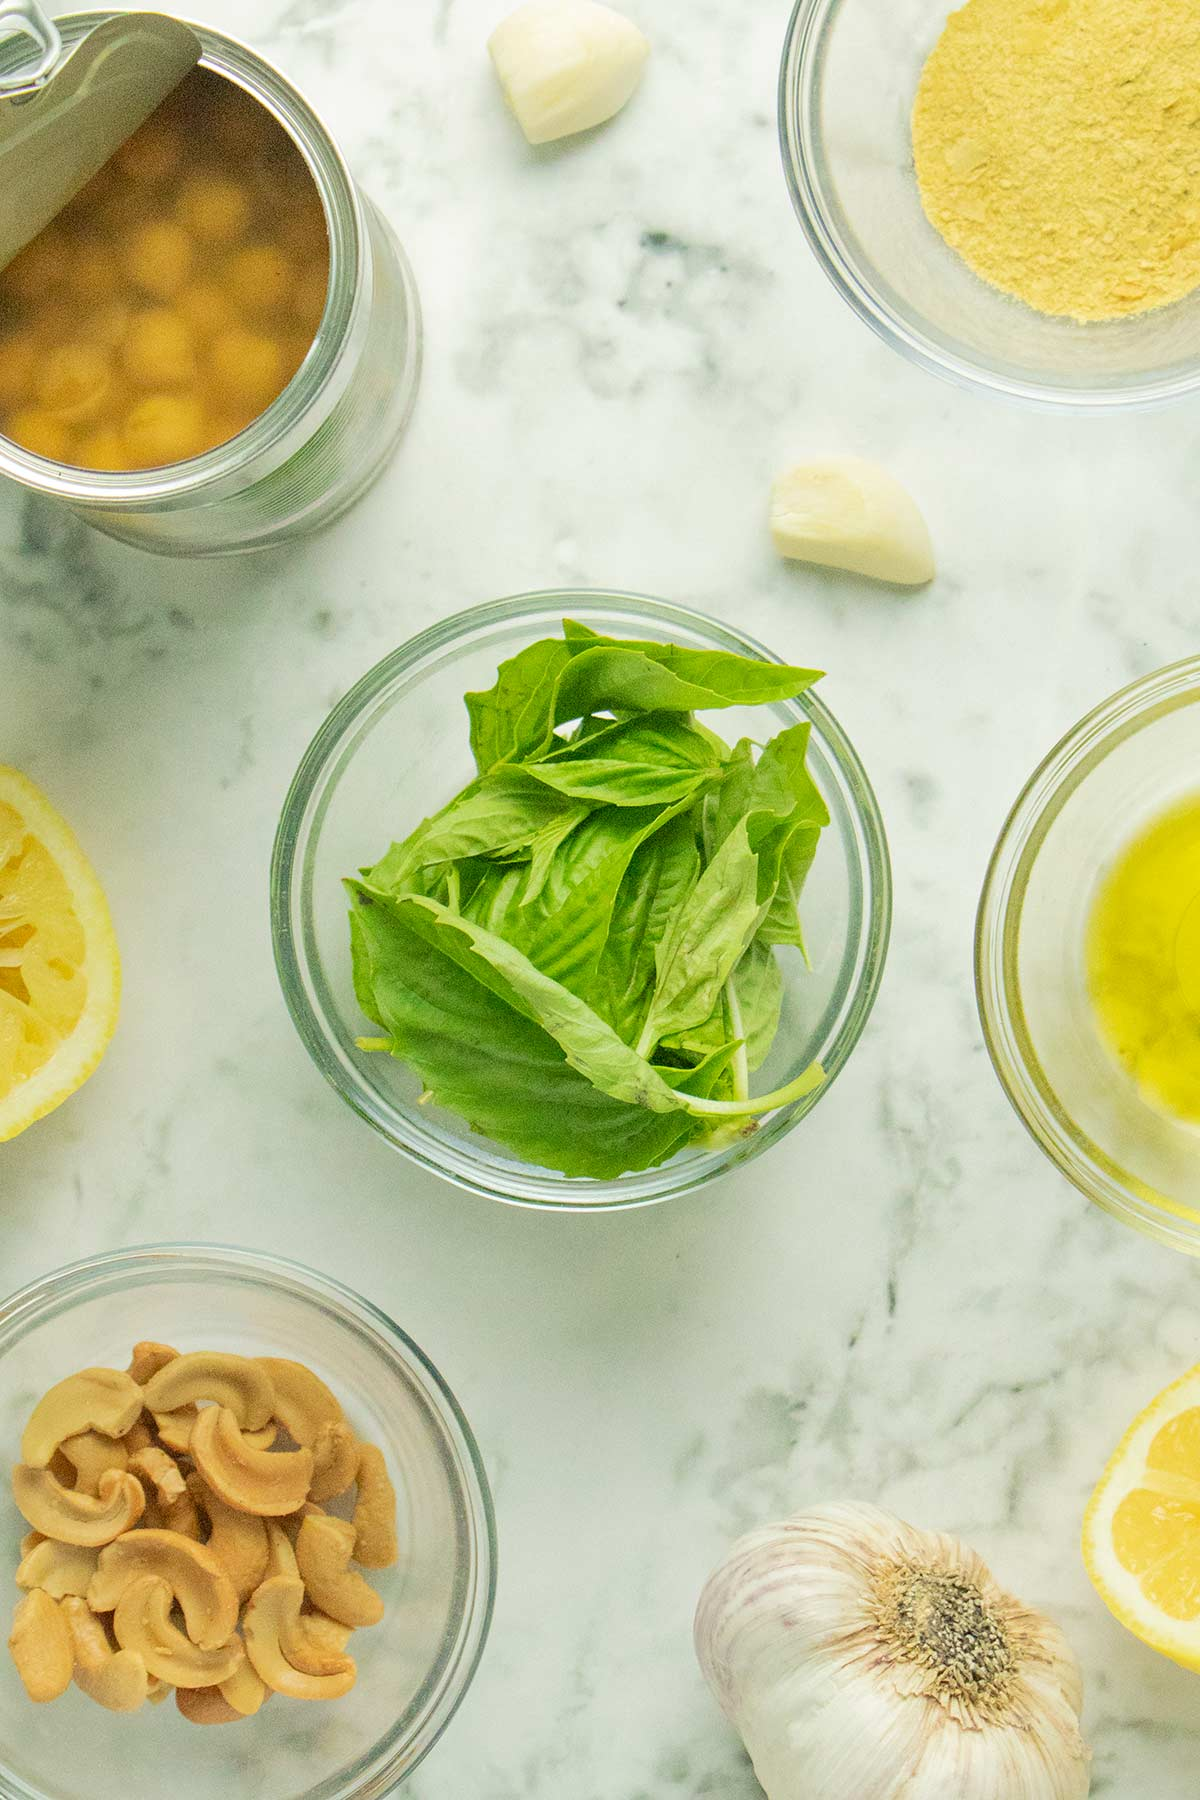 basil, chickpeas, and other basil hummus ingredients on a marble table